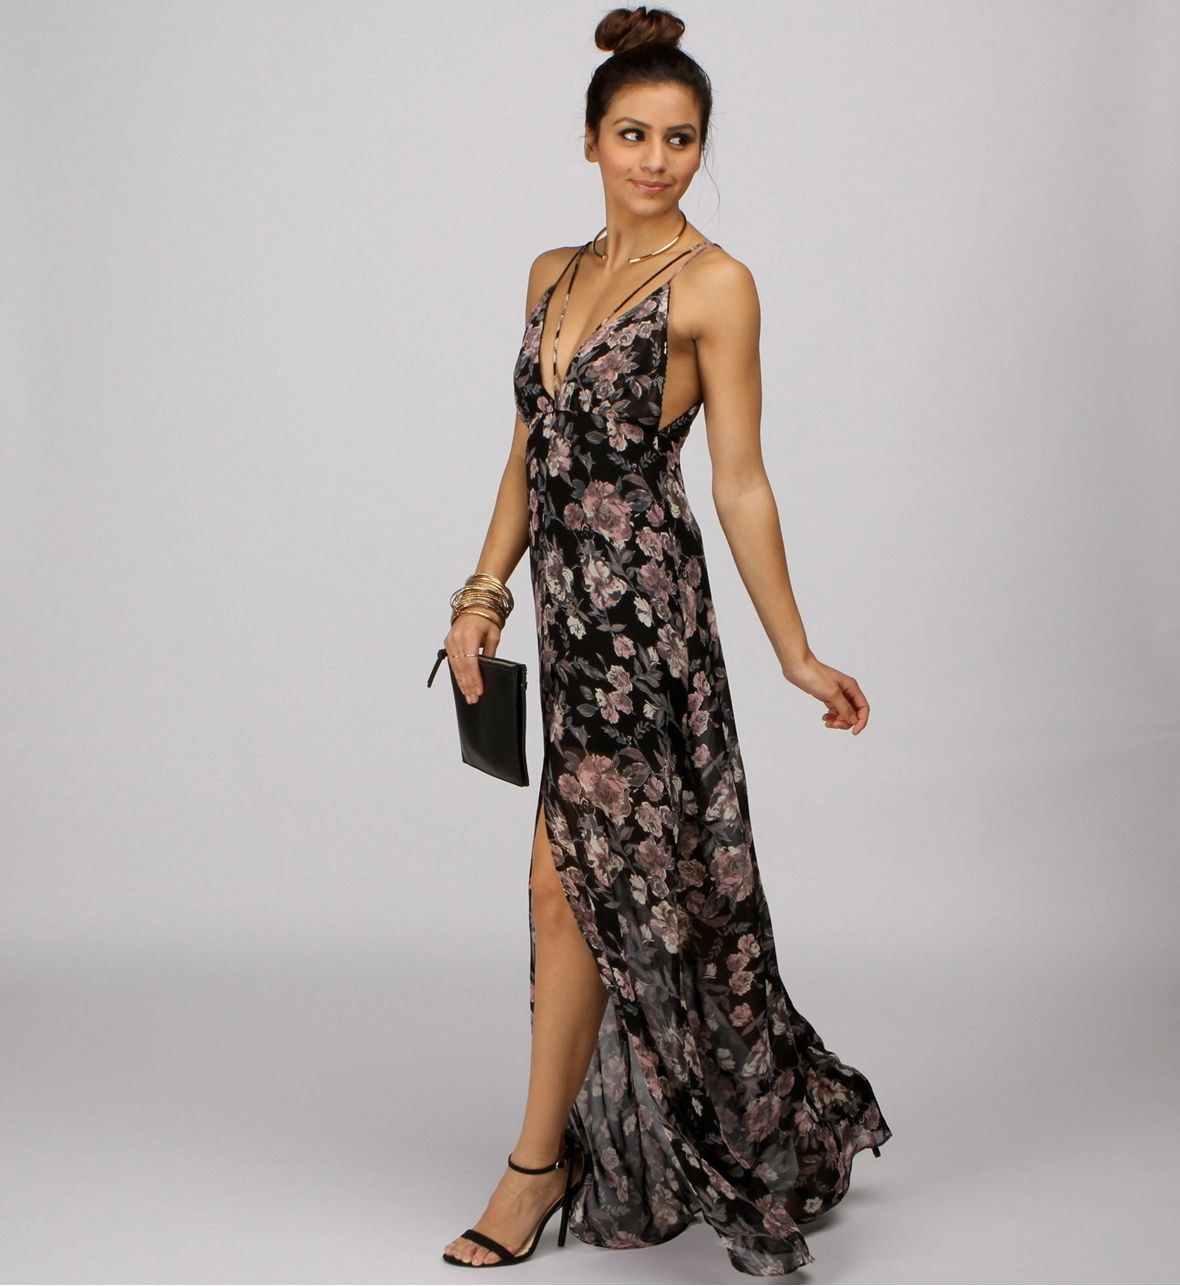 Black Flowers Bloom Maxi Dress at WindsorStore   My Style   Pinterest